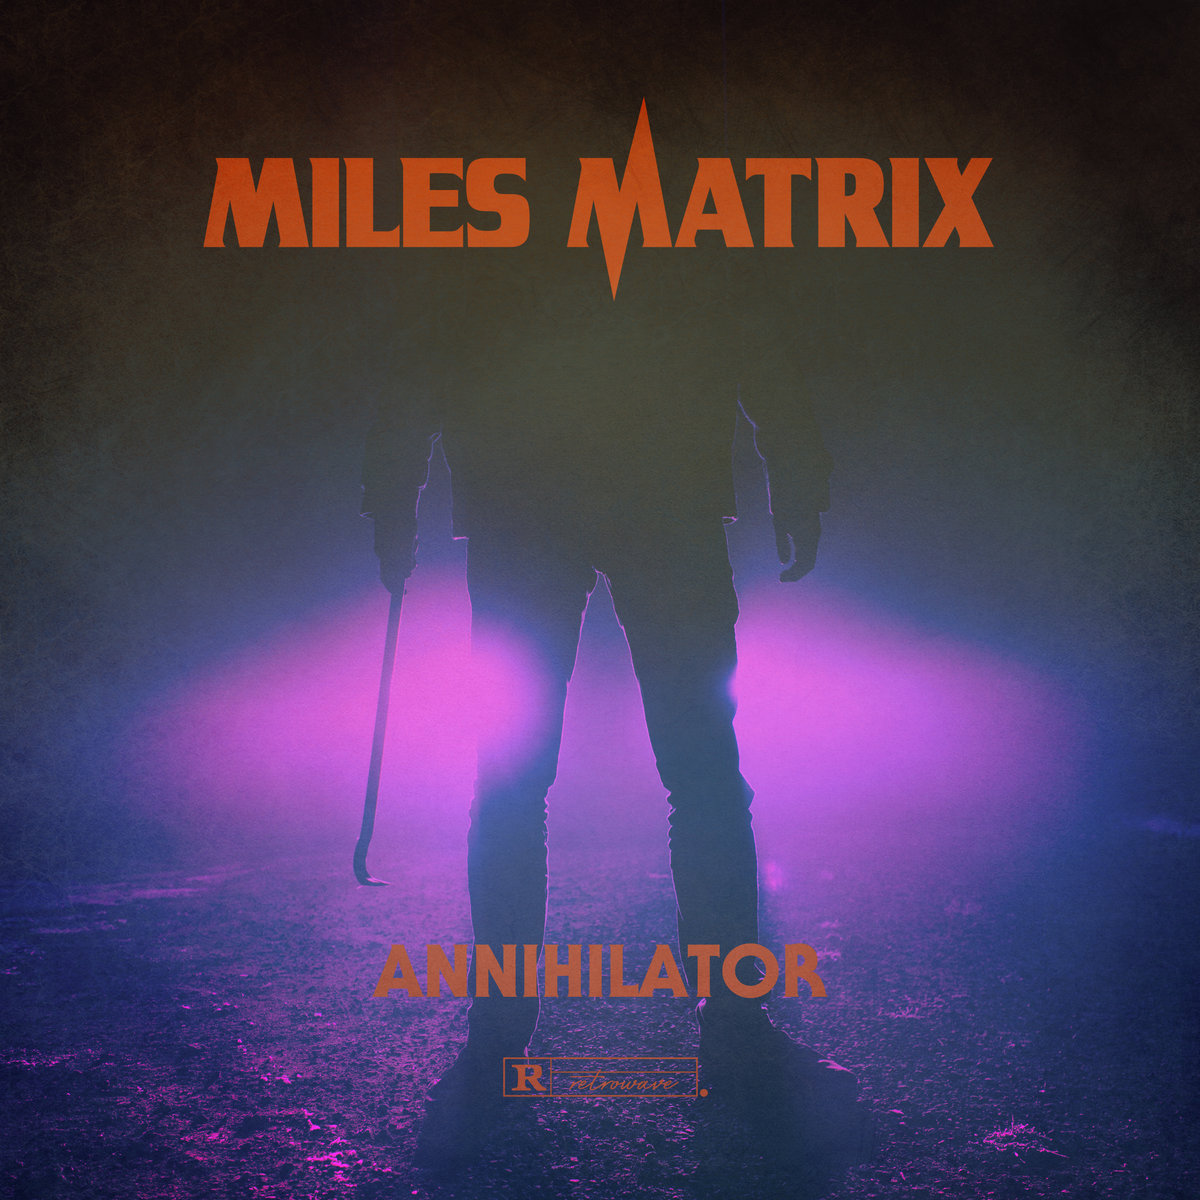 Annihilator by Miles Matrix